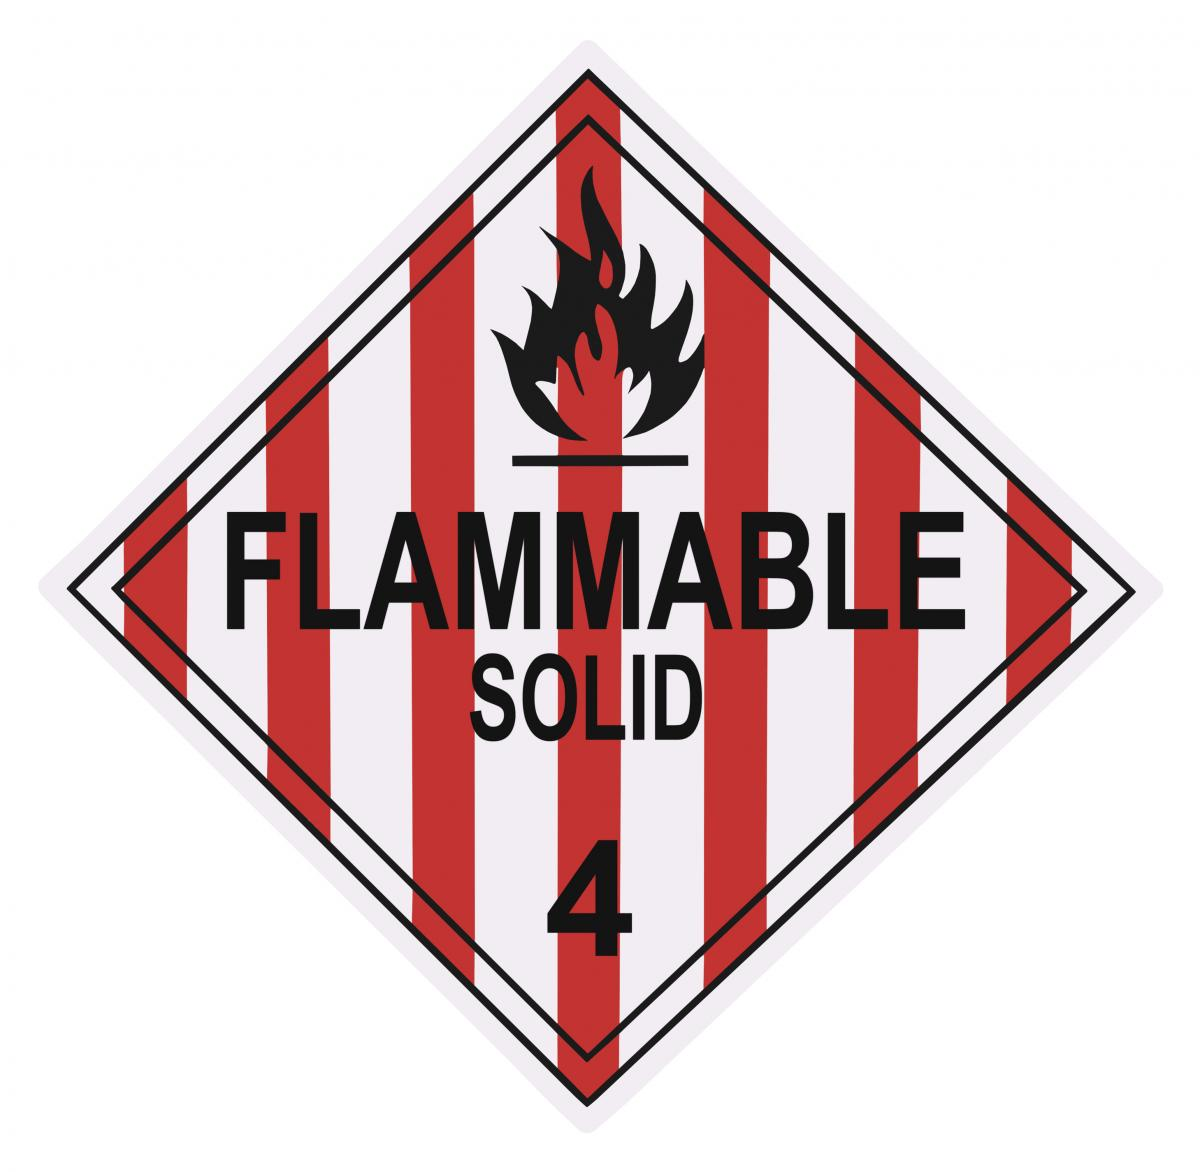 Flammabile Solids Sign